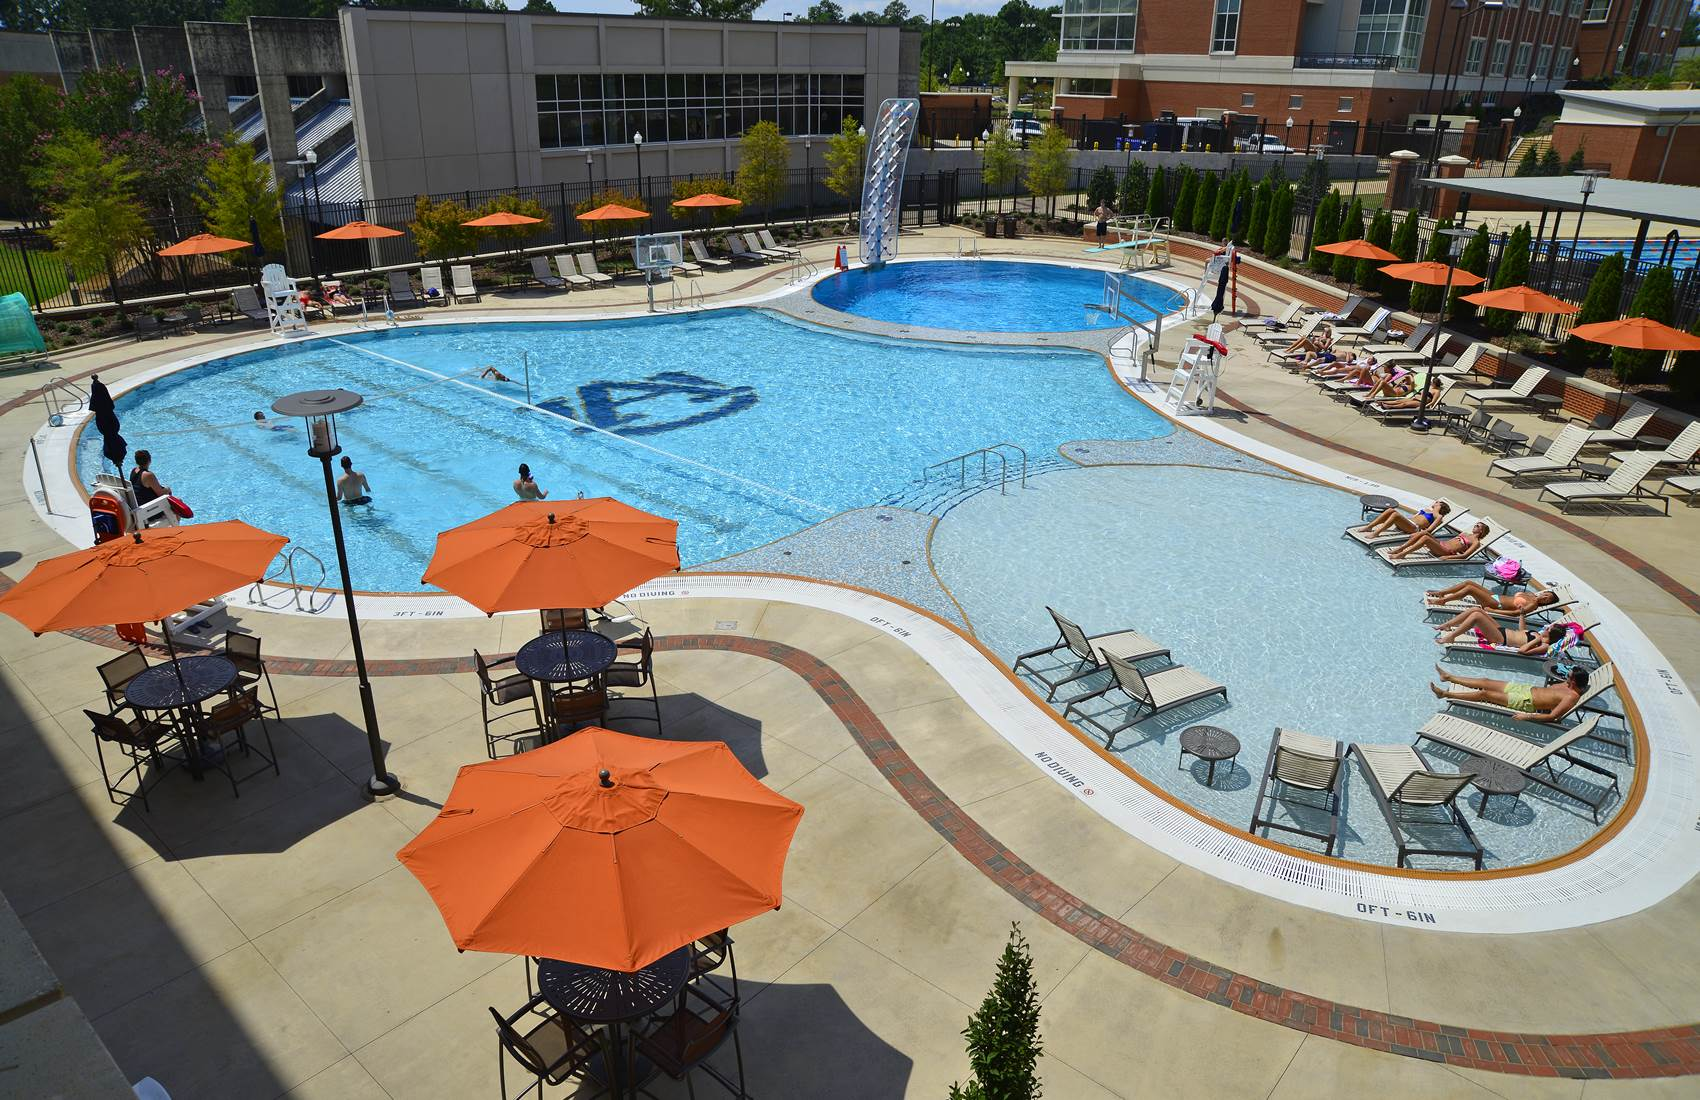 Pool at the Auburn University Recreation and Wellness Center